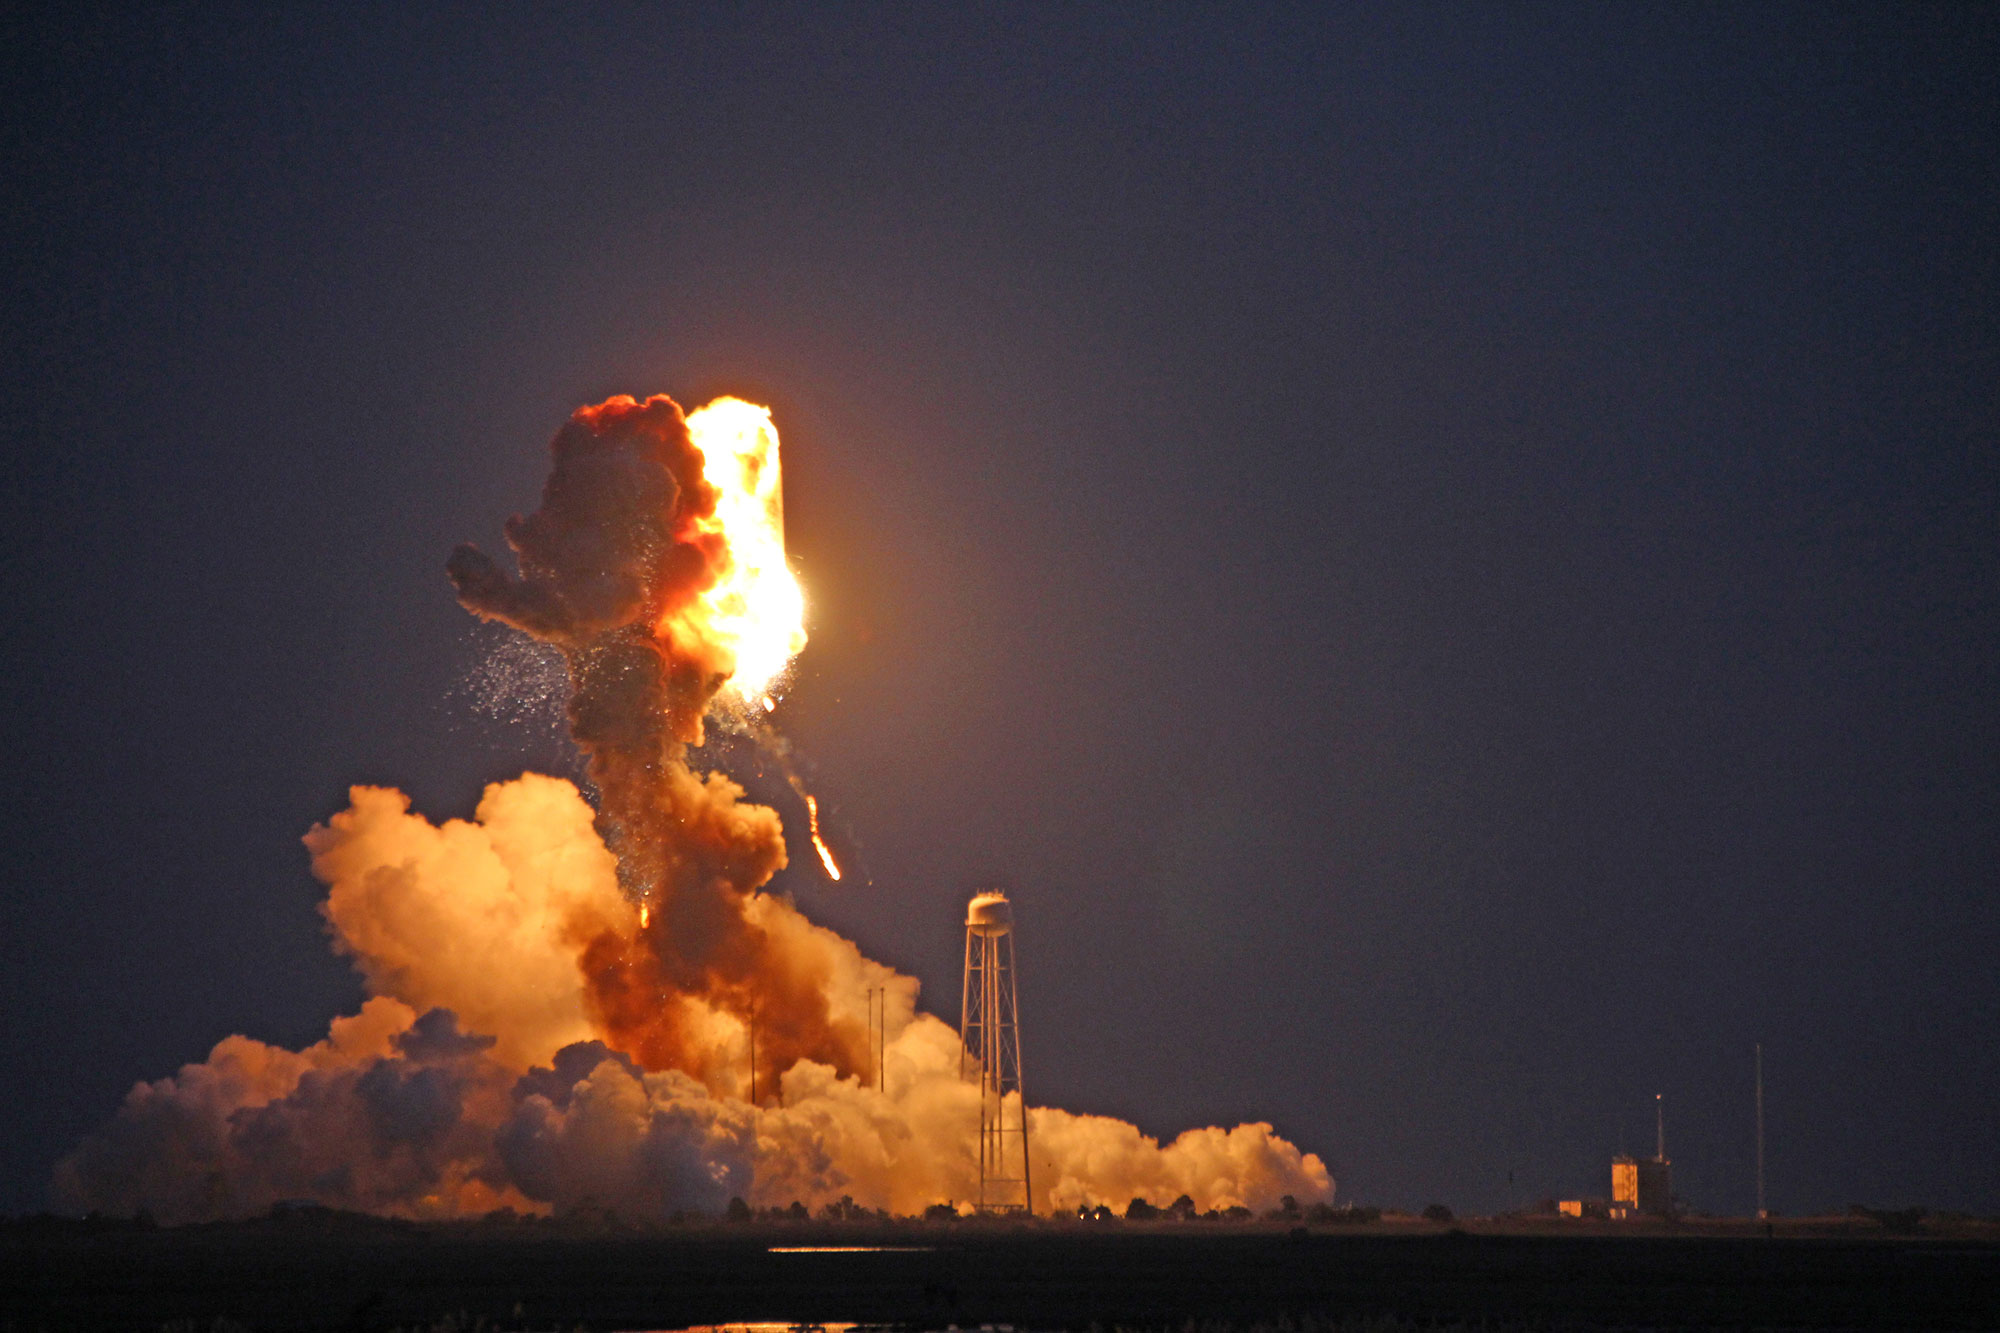 Orbital Sciences' Antares rocket explodes moments after blastoff from NASA's Wallops Flight Facility, VA, on the evening of Oct. 28, 2014. Credit: Ken Kremer